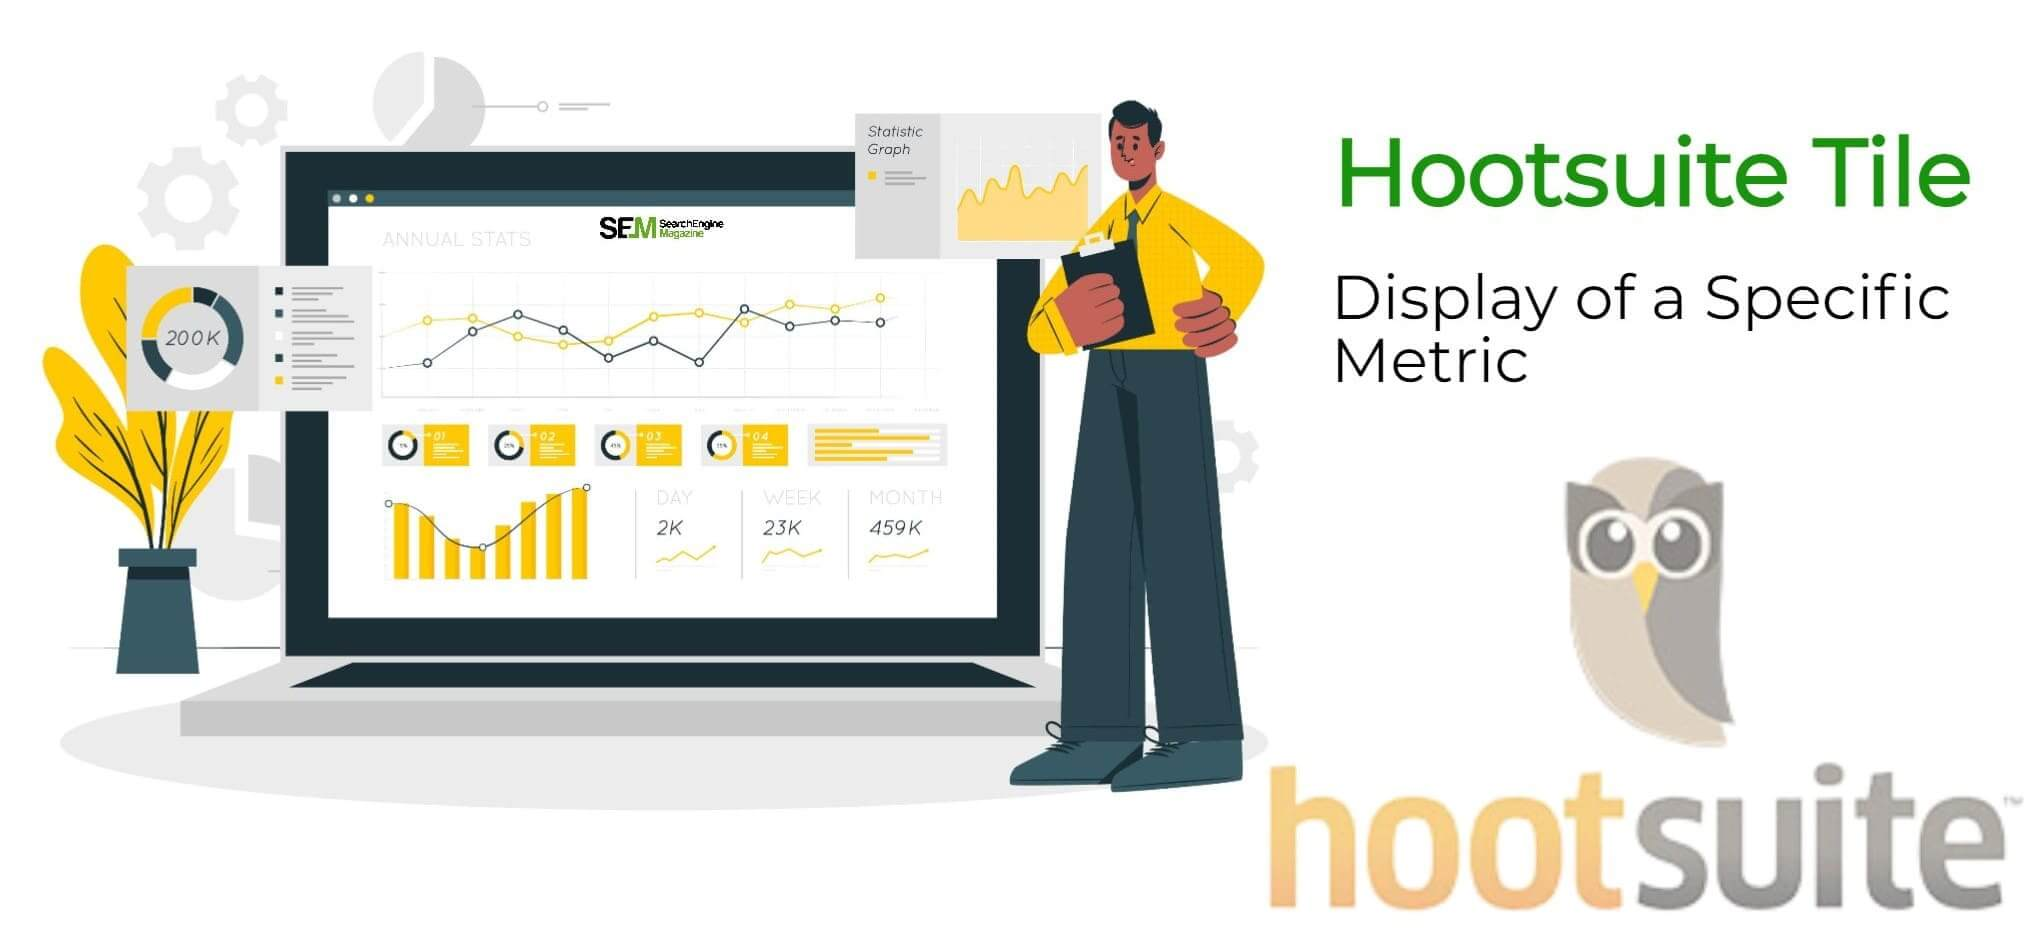 within a Hootsuite analytics report, you can add a tile, which is